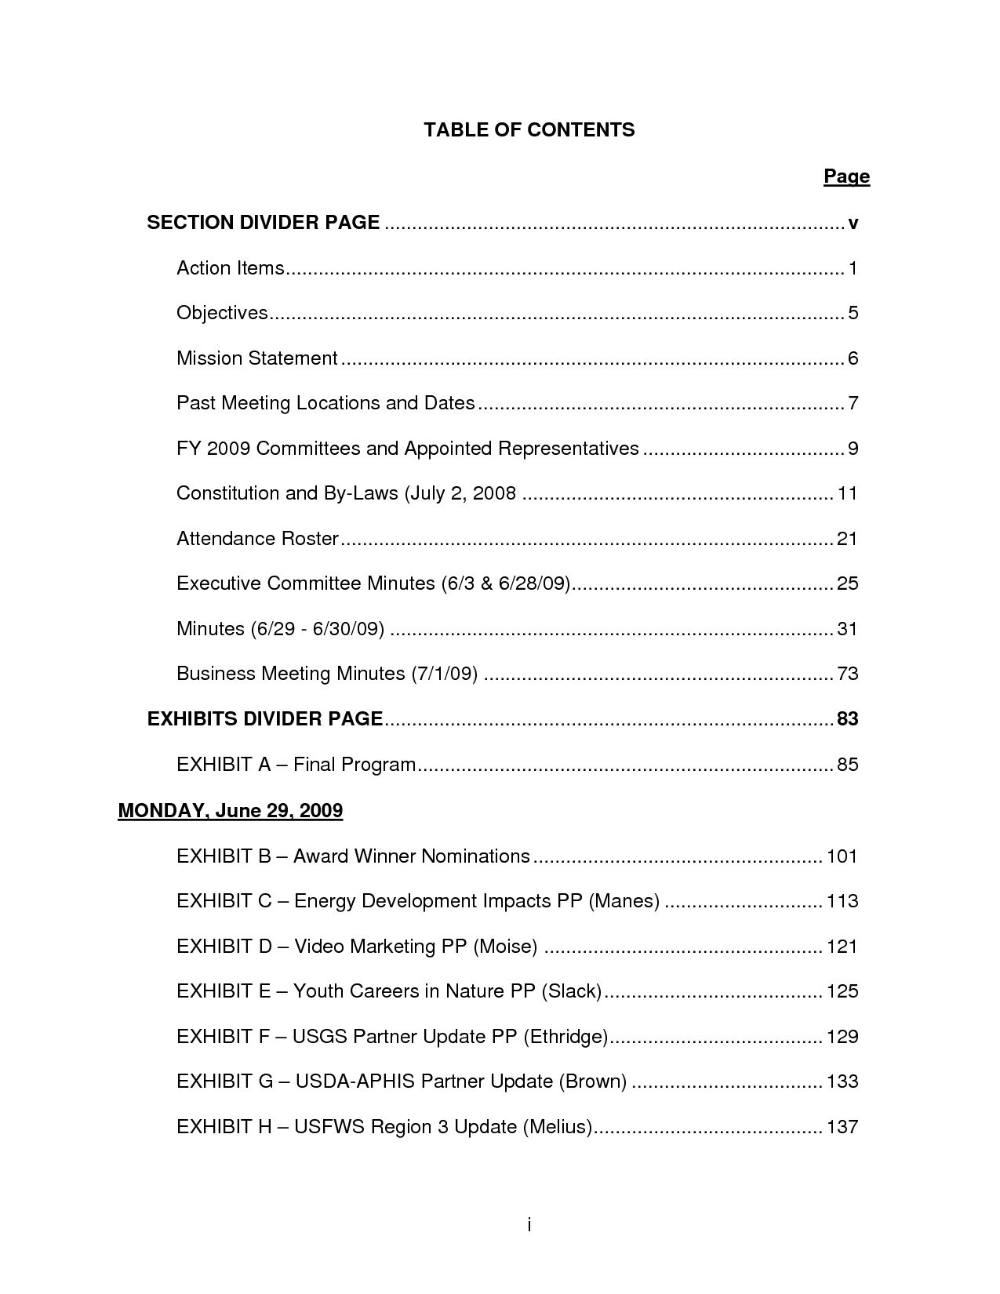 Report Content Page Template Contents Page Template Content Page Table Of Contents Template